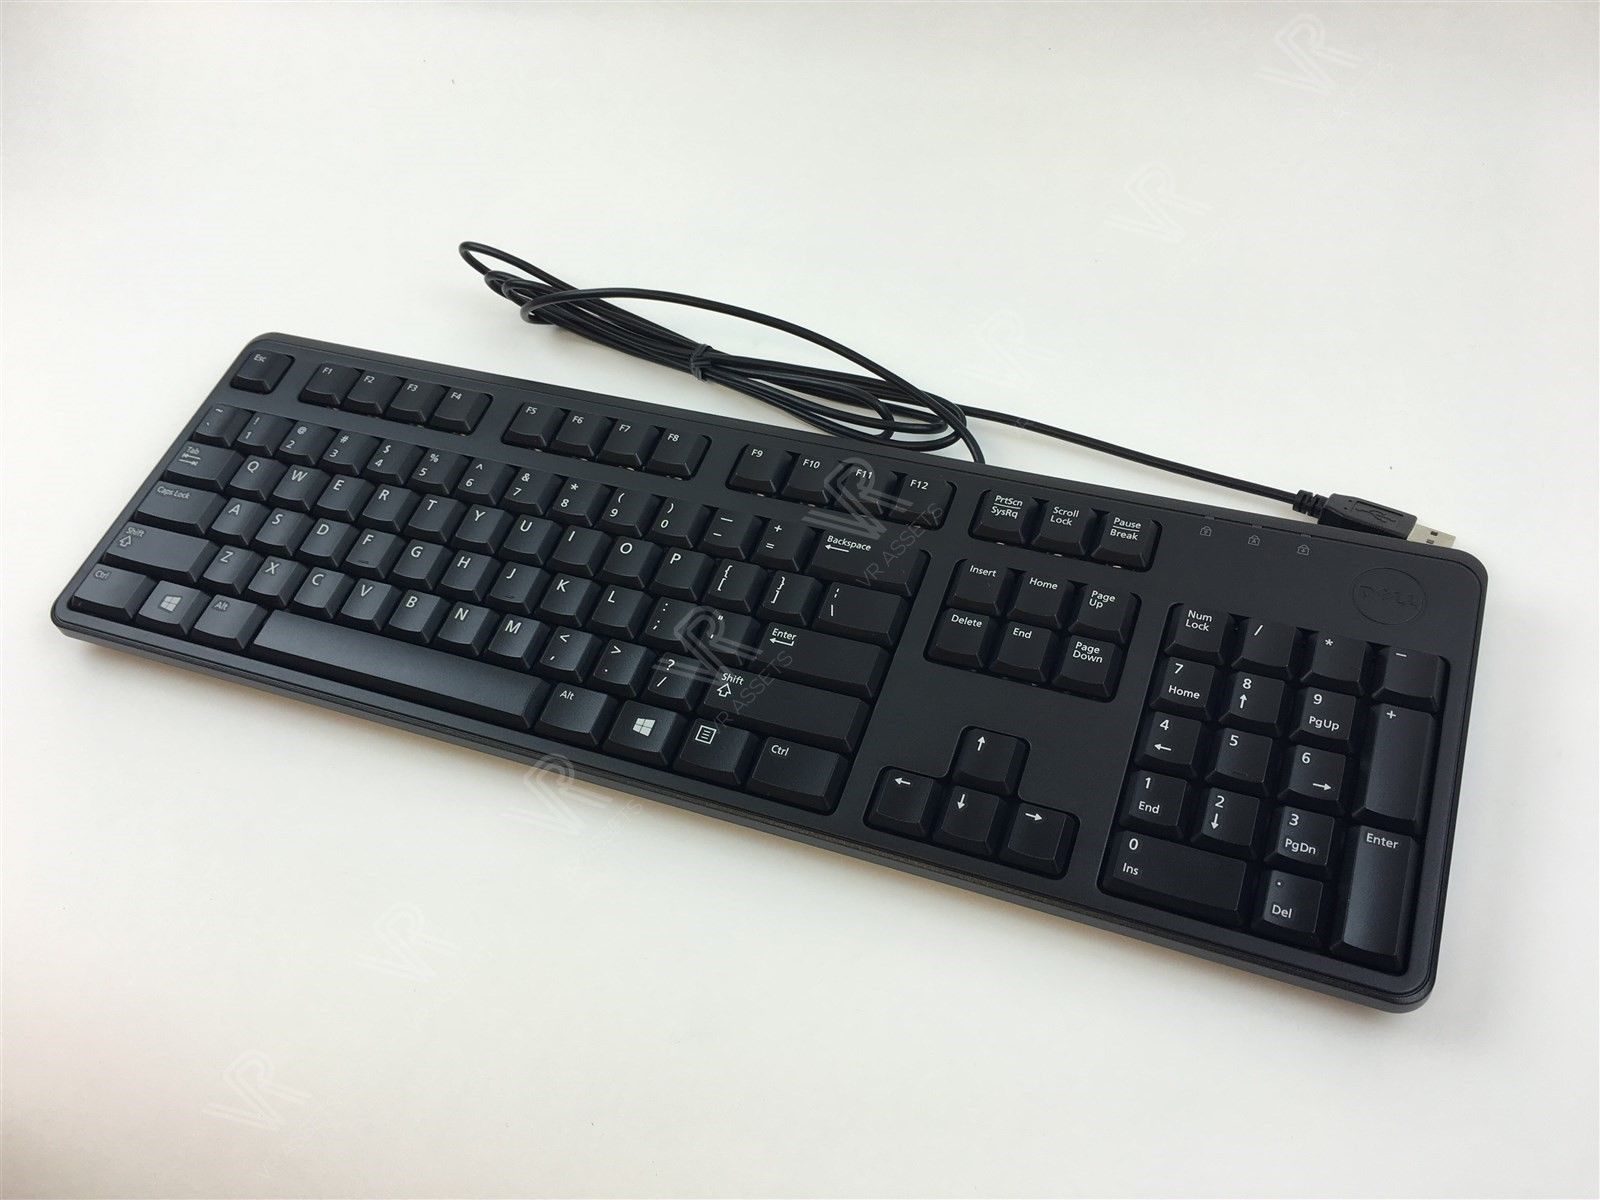 Best Quiet Wired Keyboard : vr assets new genuine dell kb212 b black slim quiet usb keyboard wired 4g481 04g481 ~ Vivirlamusica.com Haus und Dekorationen